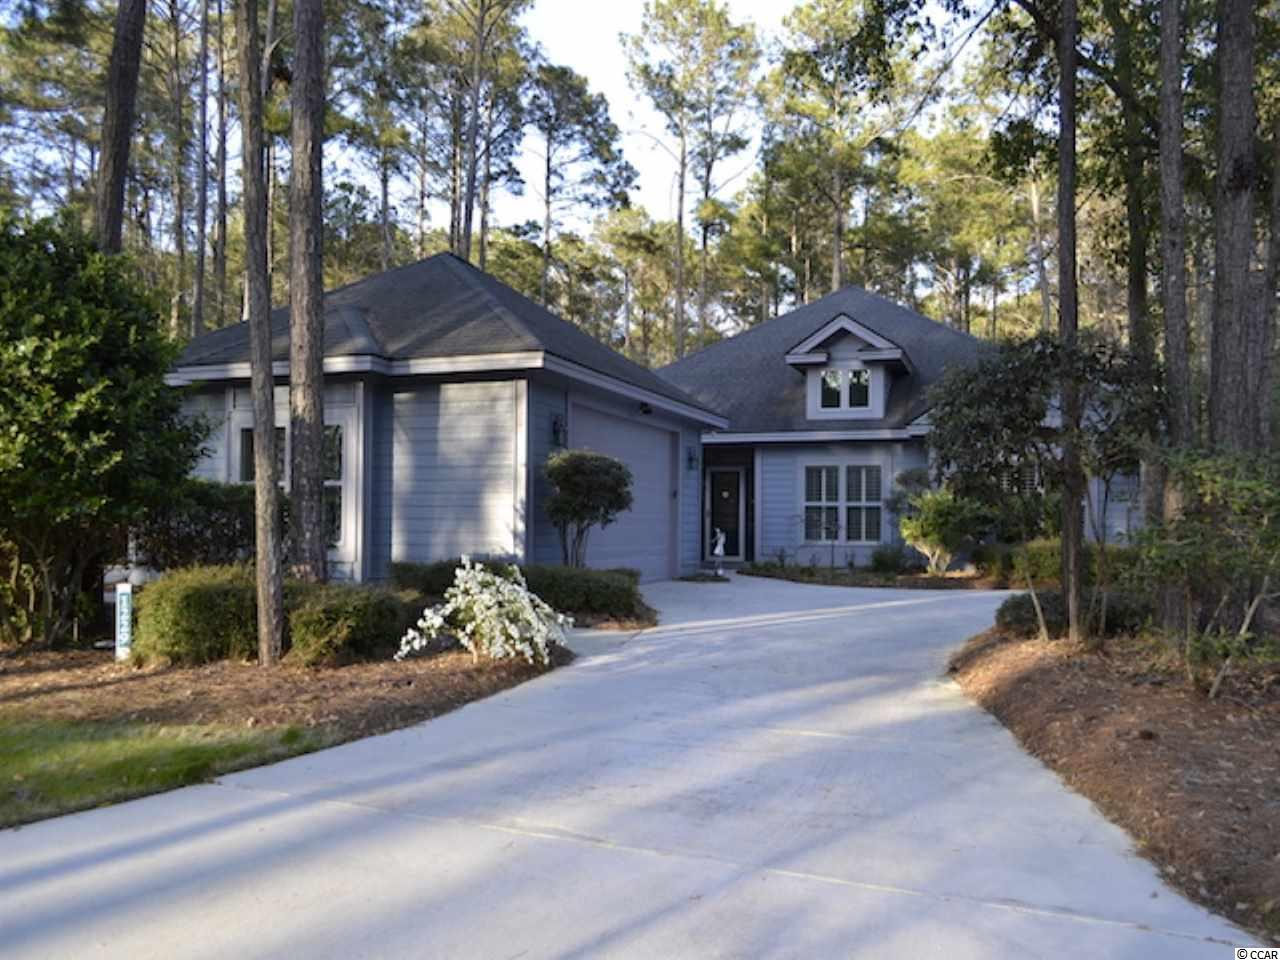 """Welcome to this 9 years young, spectacular, 3 bed, 3 bath, custom built contemporary home sitting on a rare double lot in the desirable Tidewater Plantation community!  With its 3,000 square feet of heated living space this home is one of the larger and newer homes in the Plantation neighborhood at Tidewater. Upon entering, you will step into an open and spacious living area with 20 foot high ceilings, extensive moldings, brand new flooring throughout the living area and all bathed in natural light. The open concept living space is further complimented by a double-sided fireplace and adjoining music/television room.  The home also features an exquisite Carolina Room with 3 walls of Kolby hurricane glass, a double tray ceiling, and private access to a cozy side patio featuring a pergola and fountain for relaxing. The gourmet kitchen features top of the line Shivakashi granite counters with full backsplash, top-of-the-line stainless steel appliances, and a gas range with a custom hood. The generous master suite includes a double tray ceiling with ceiling fan, walk-in closets and an en-suite bath with a large garden tub, dual sinks and a walk-in shower with artfully crafted blue granite and tile. The other two large bedrooms, one of which can also be used as an office and includes a custom designed """"More Space"""" bedding unit, share access to the second lovely bath with a vessel sink, marble floors and double-head shower with crafted tile. It also features a mud/laundry room with a 3rd bathroom perfectly placed for a shower after your return from the beach.  The outdoor space offers a private backyard patio with mature landscaping. A circular driveway leads to an adjoining one-of-a kind """"drive through"""" oversized two-car garage with custom cabinets and floor covering. The home also features a security system, built-in speakers throughout, Rinnai hot water system, irrigation, and CertainTeed all weather board exterior siding. Tidewater Plantation residents also enjoy an oc"""